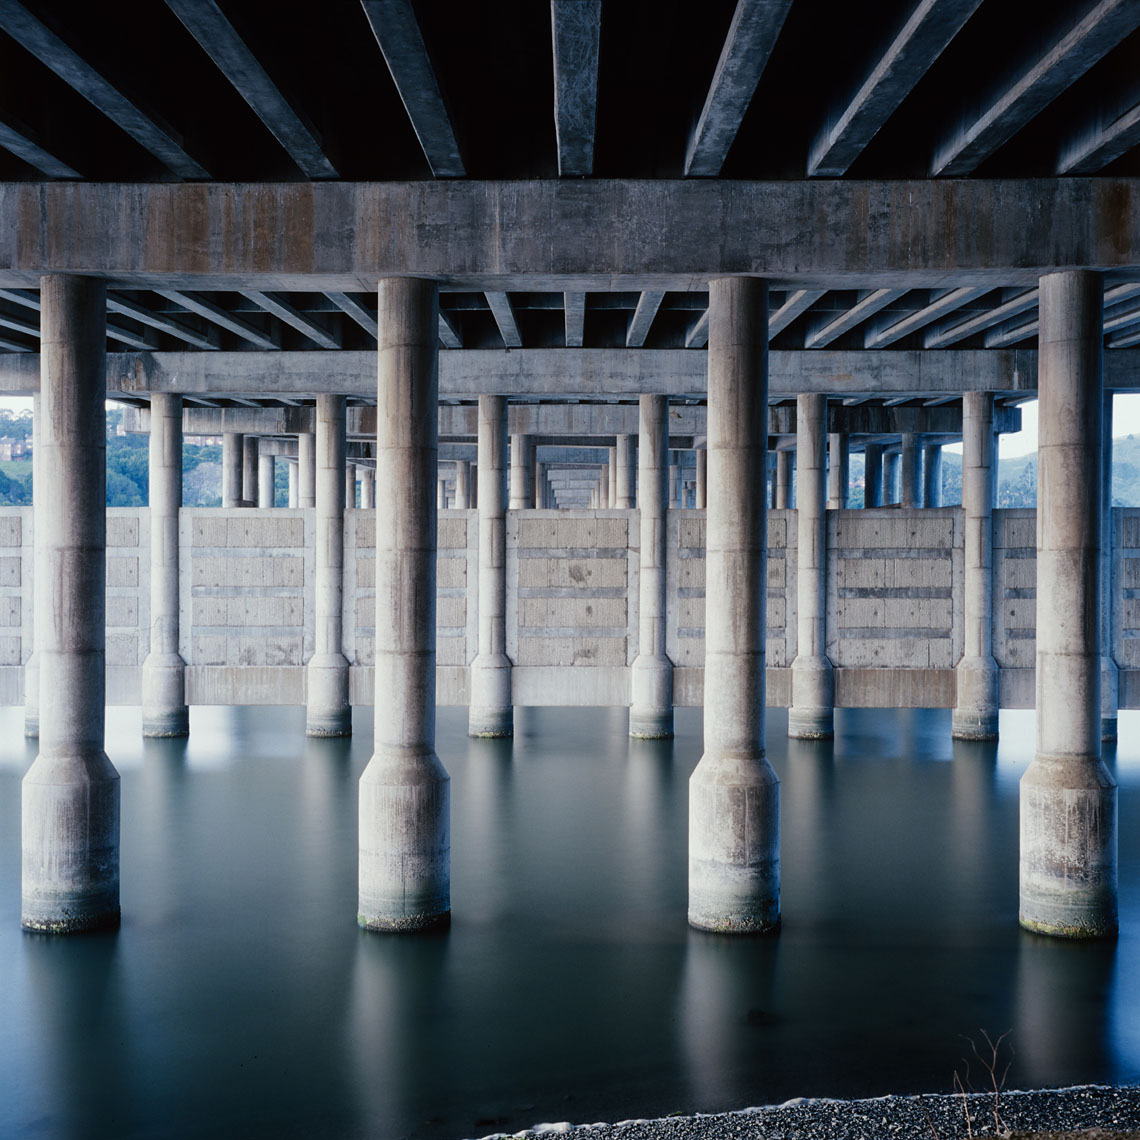 David Bowman fine art water architecture landscape photographs 001